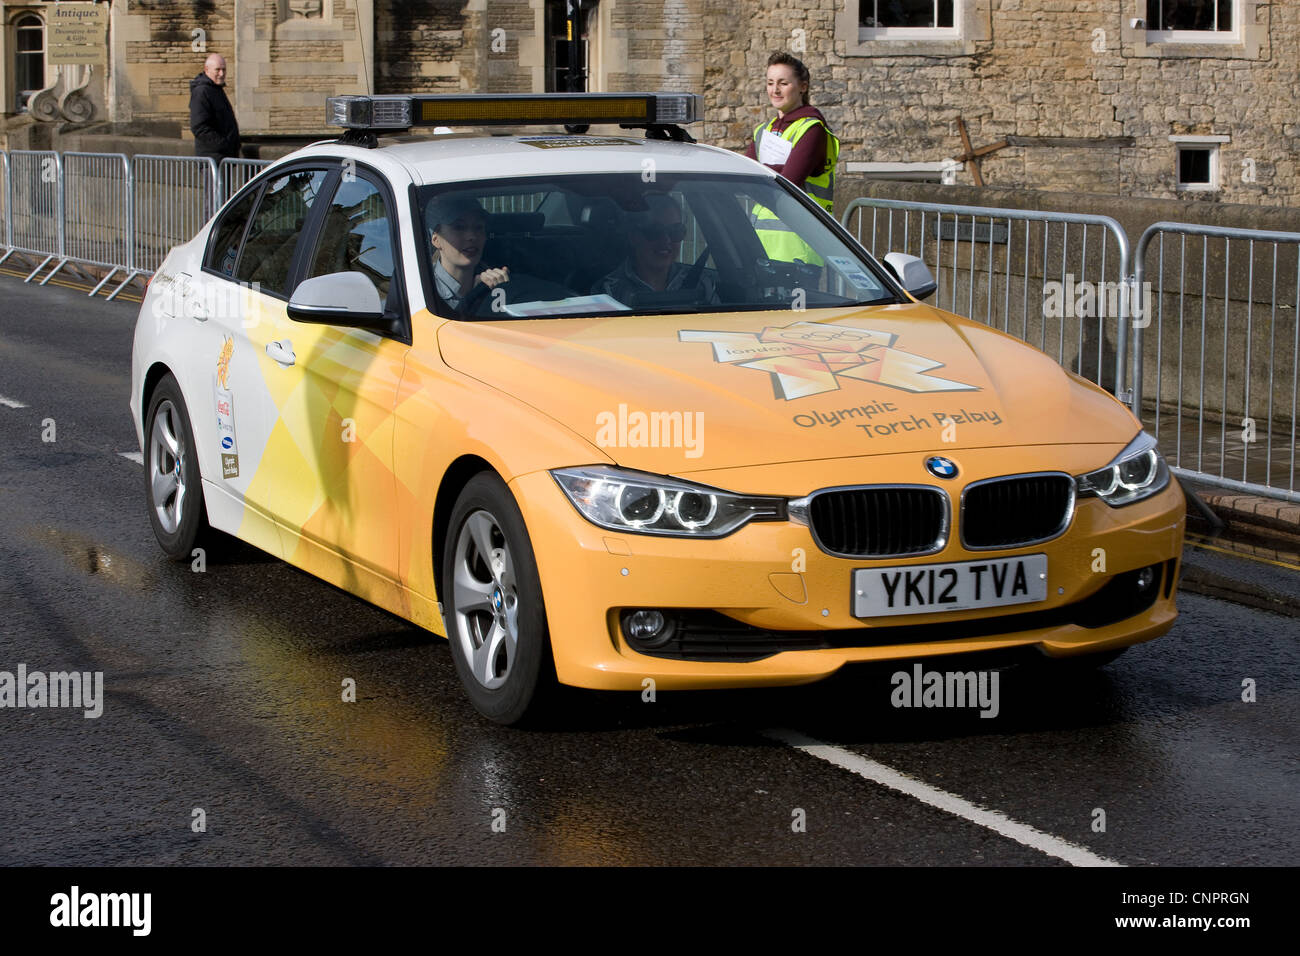 BMW Olympic Torch Relay Support Car - Stock Image